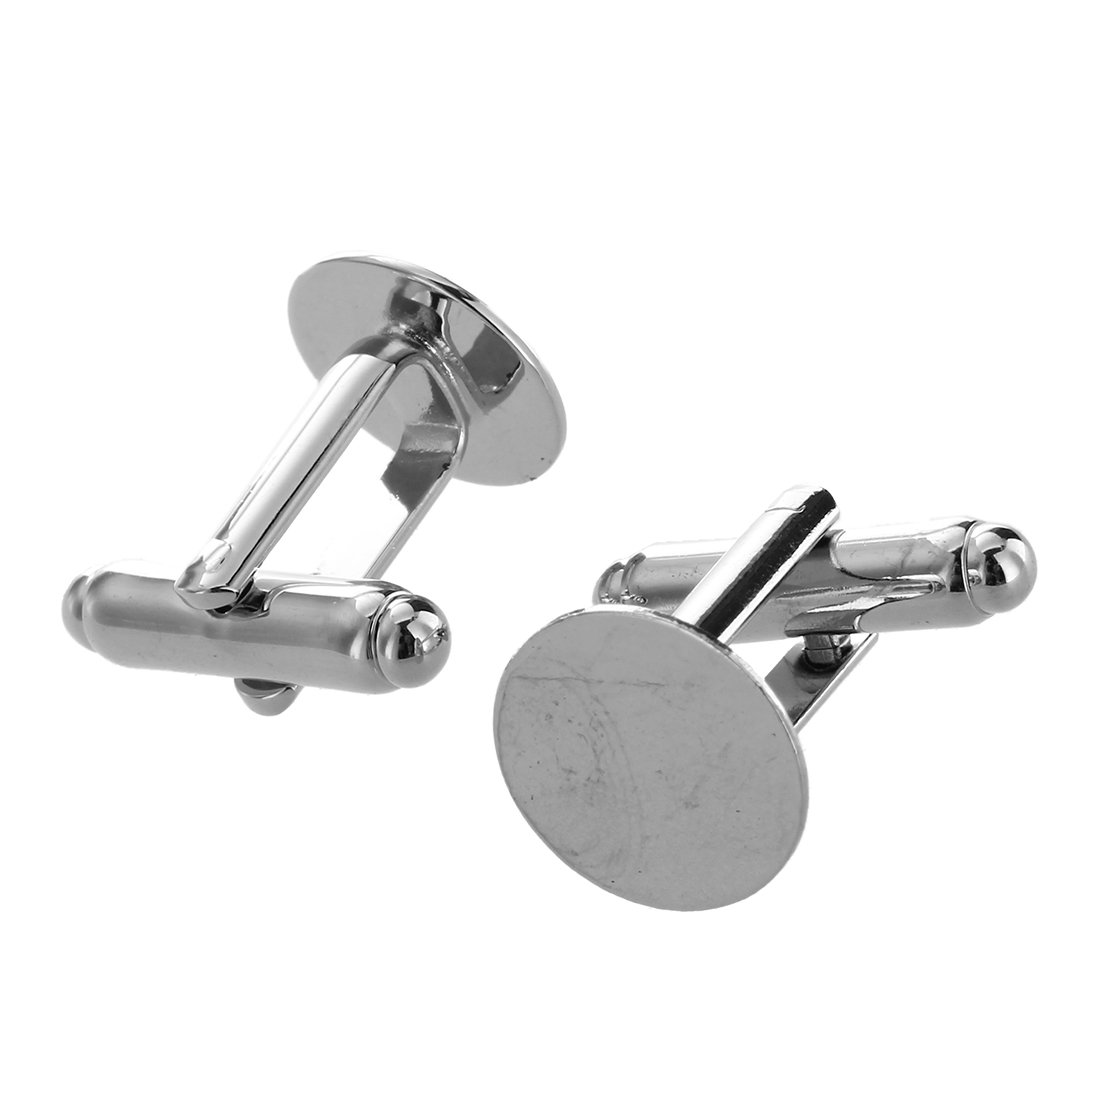 SODIAL(R) 10 Mens Cufflinks Cuff Link Backs Blanks Findings 13mm HOT by SODIAL(R) (Image #3)